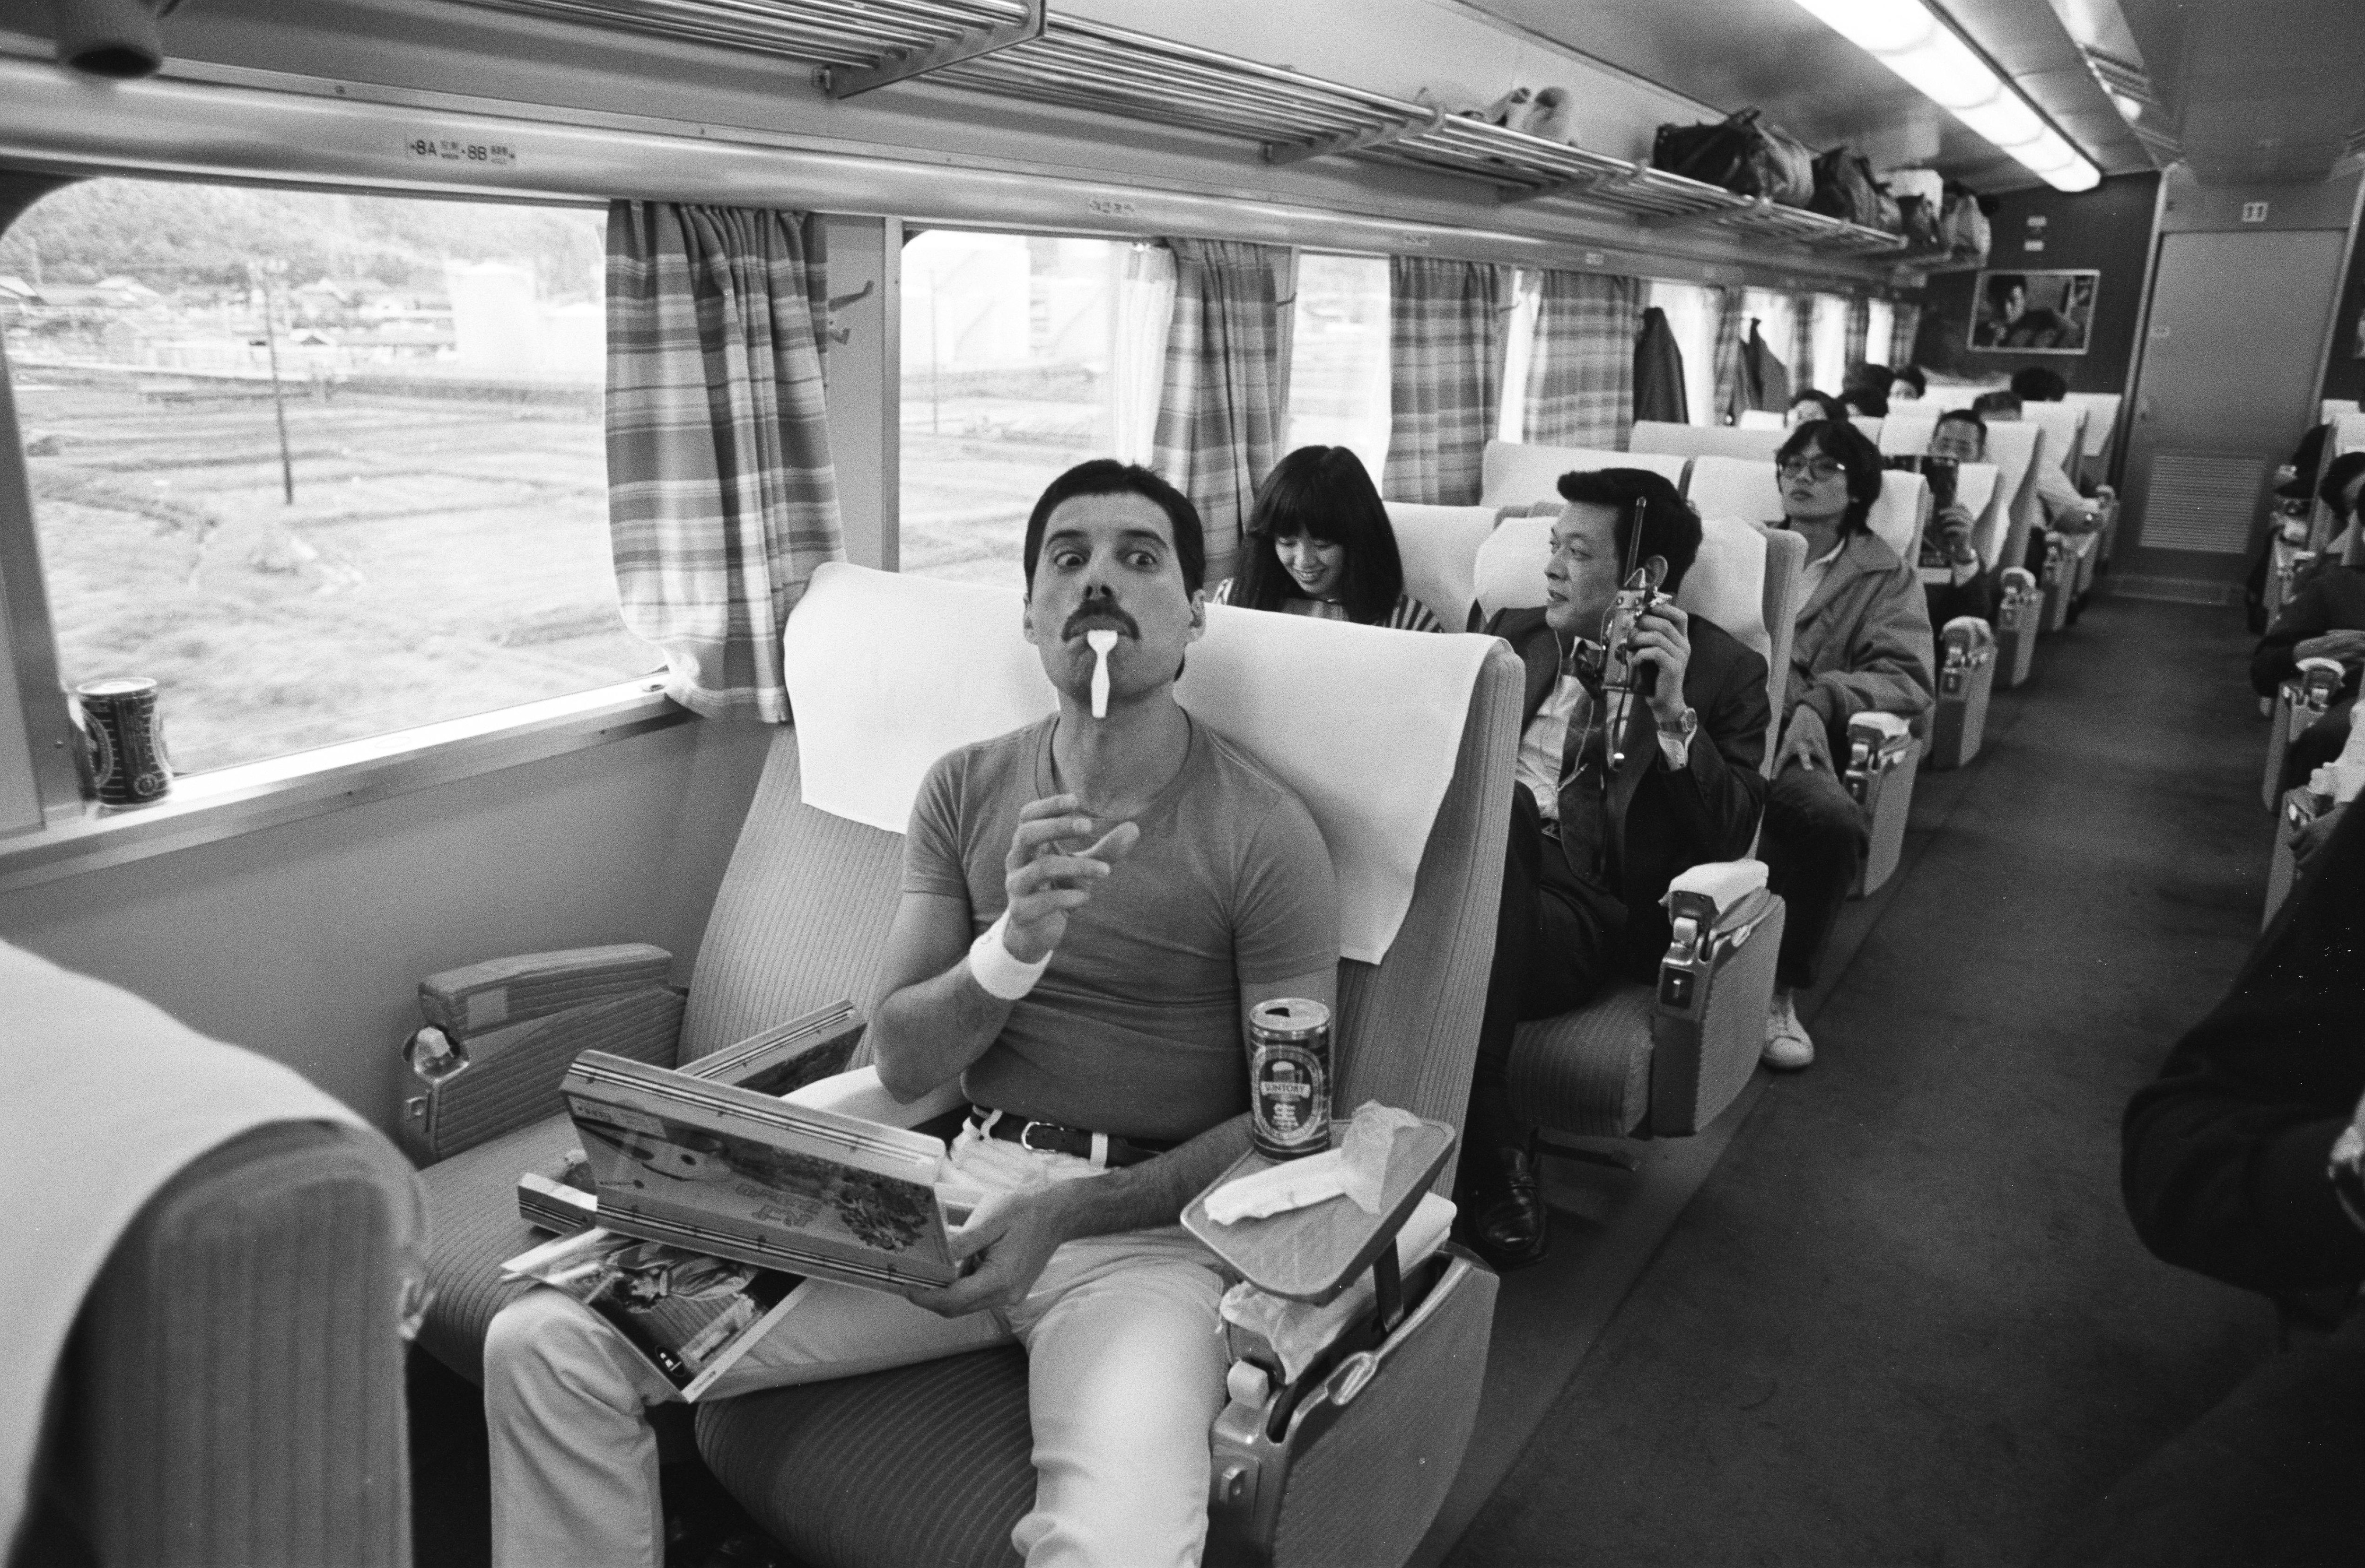 1548858720157_GettyImages-1051251284.jpg - 25 ottobre 1982. Freddie Mercury parte in treno per Nagoya durante l'Hot Space Japan tour dei Queen